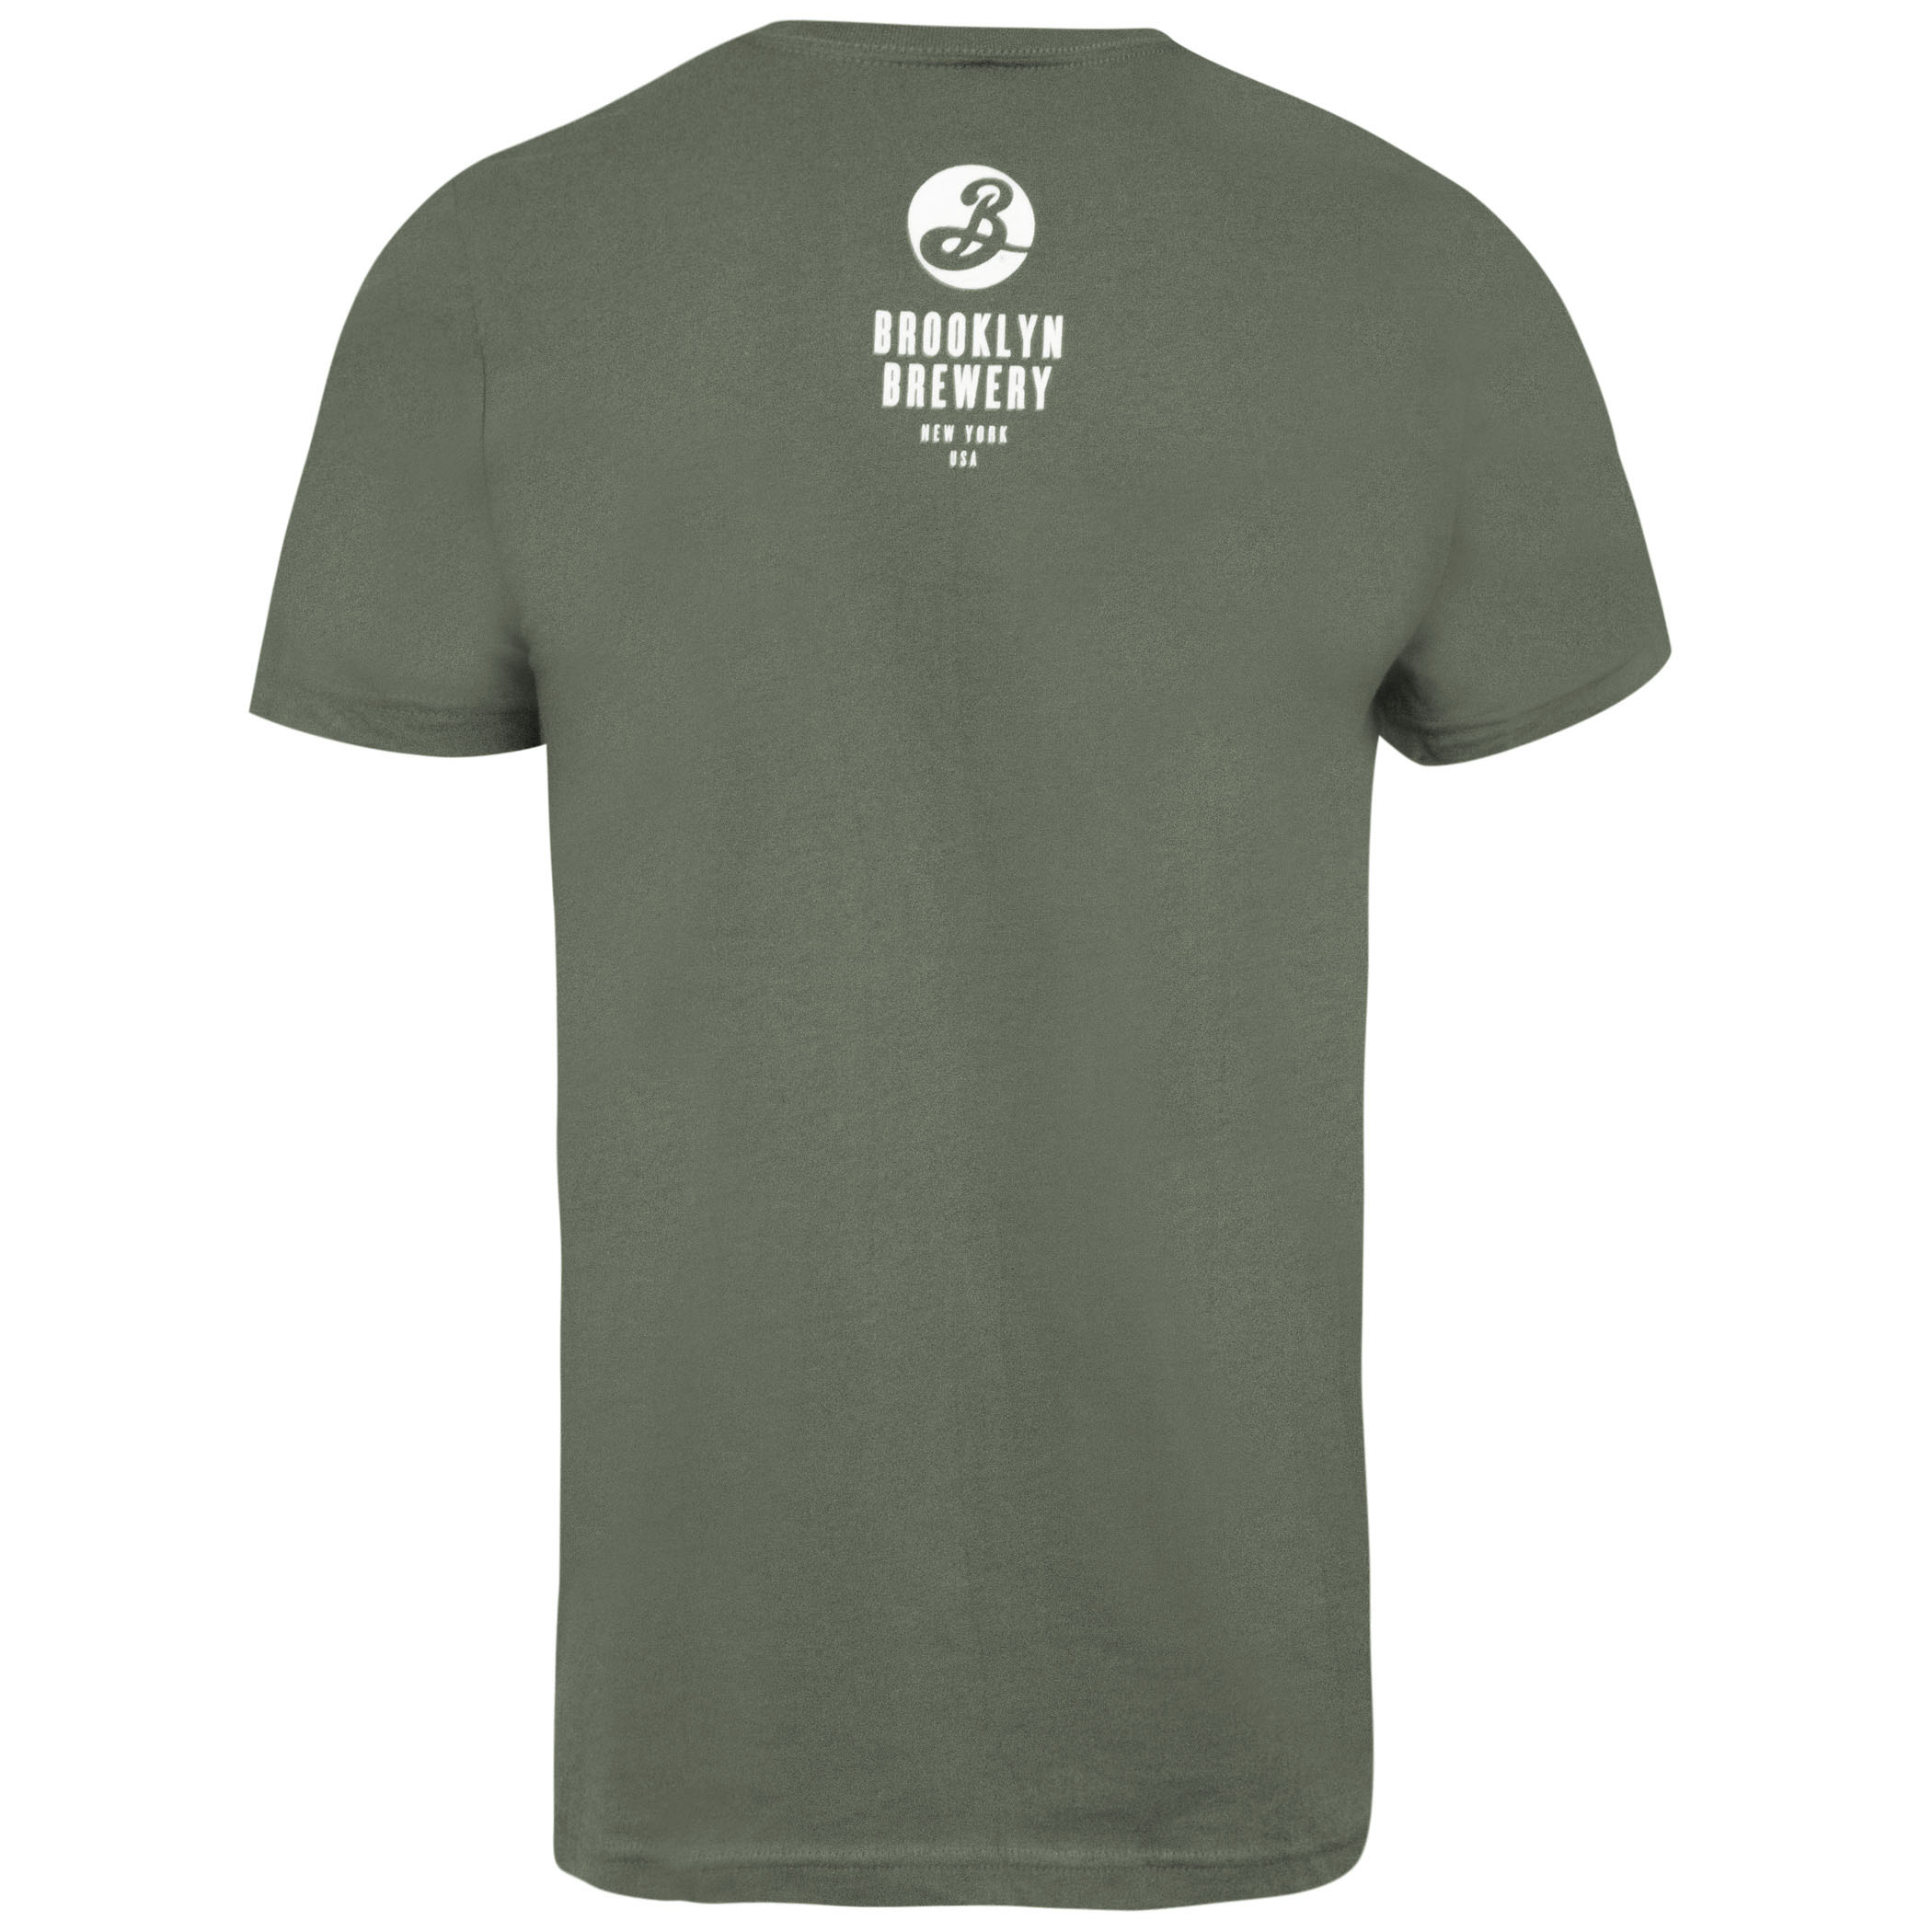 BROOKLYN BREWERY New York State Green Tee Shirt